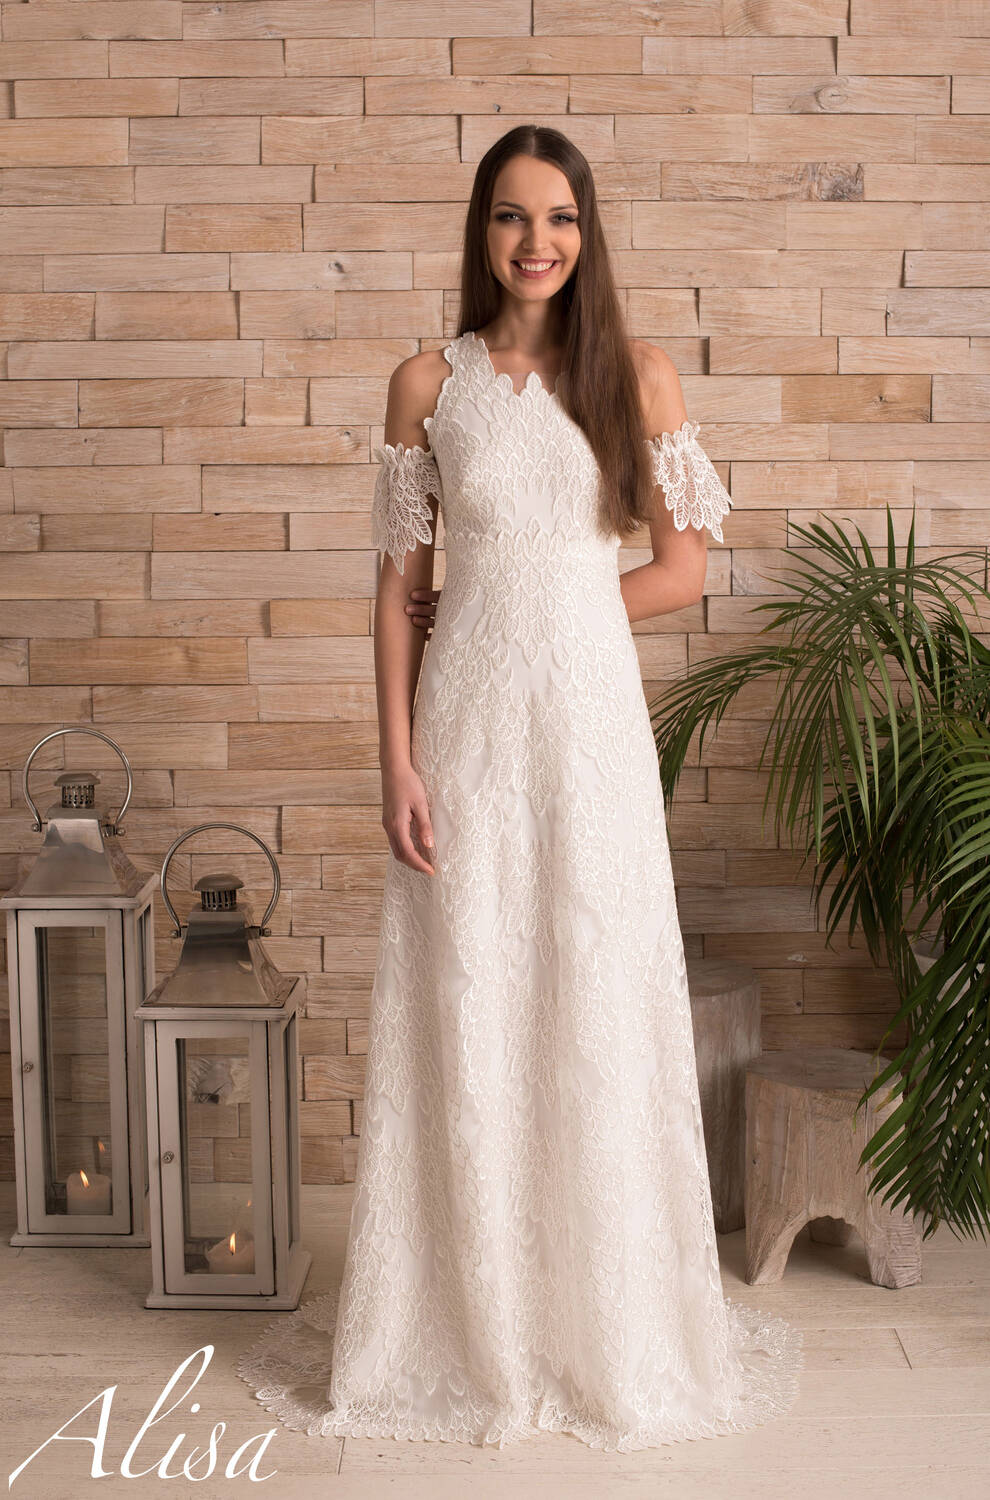 Lilou wedding dress